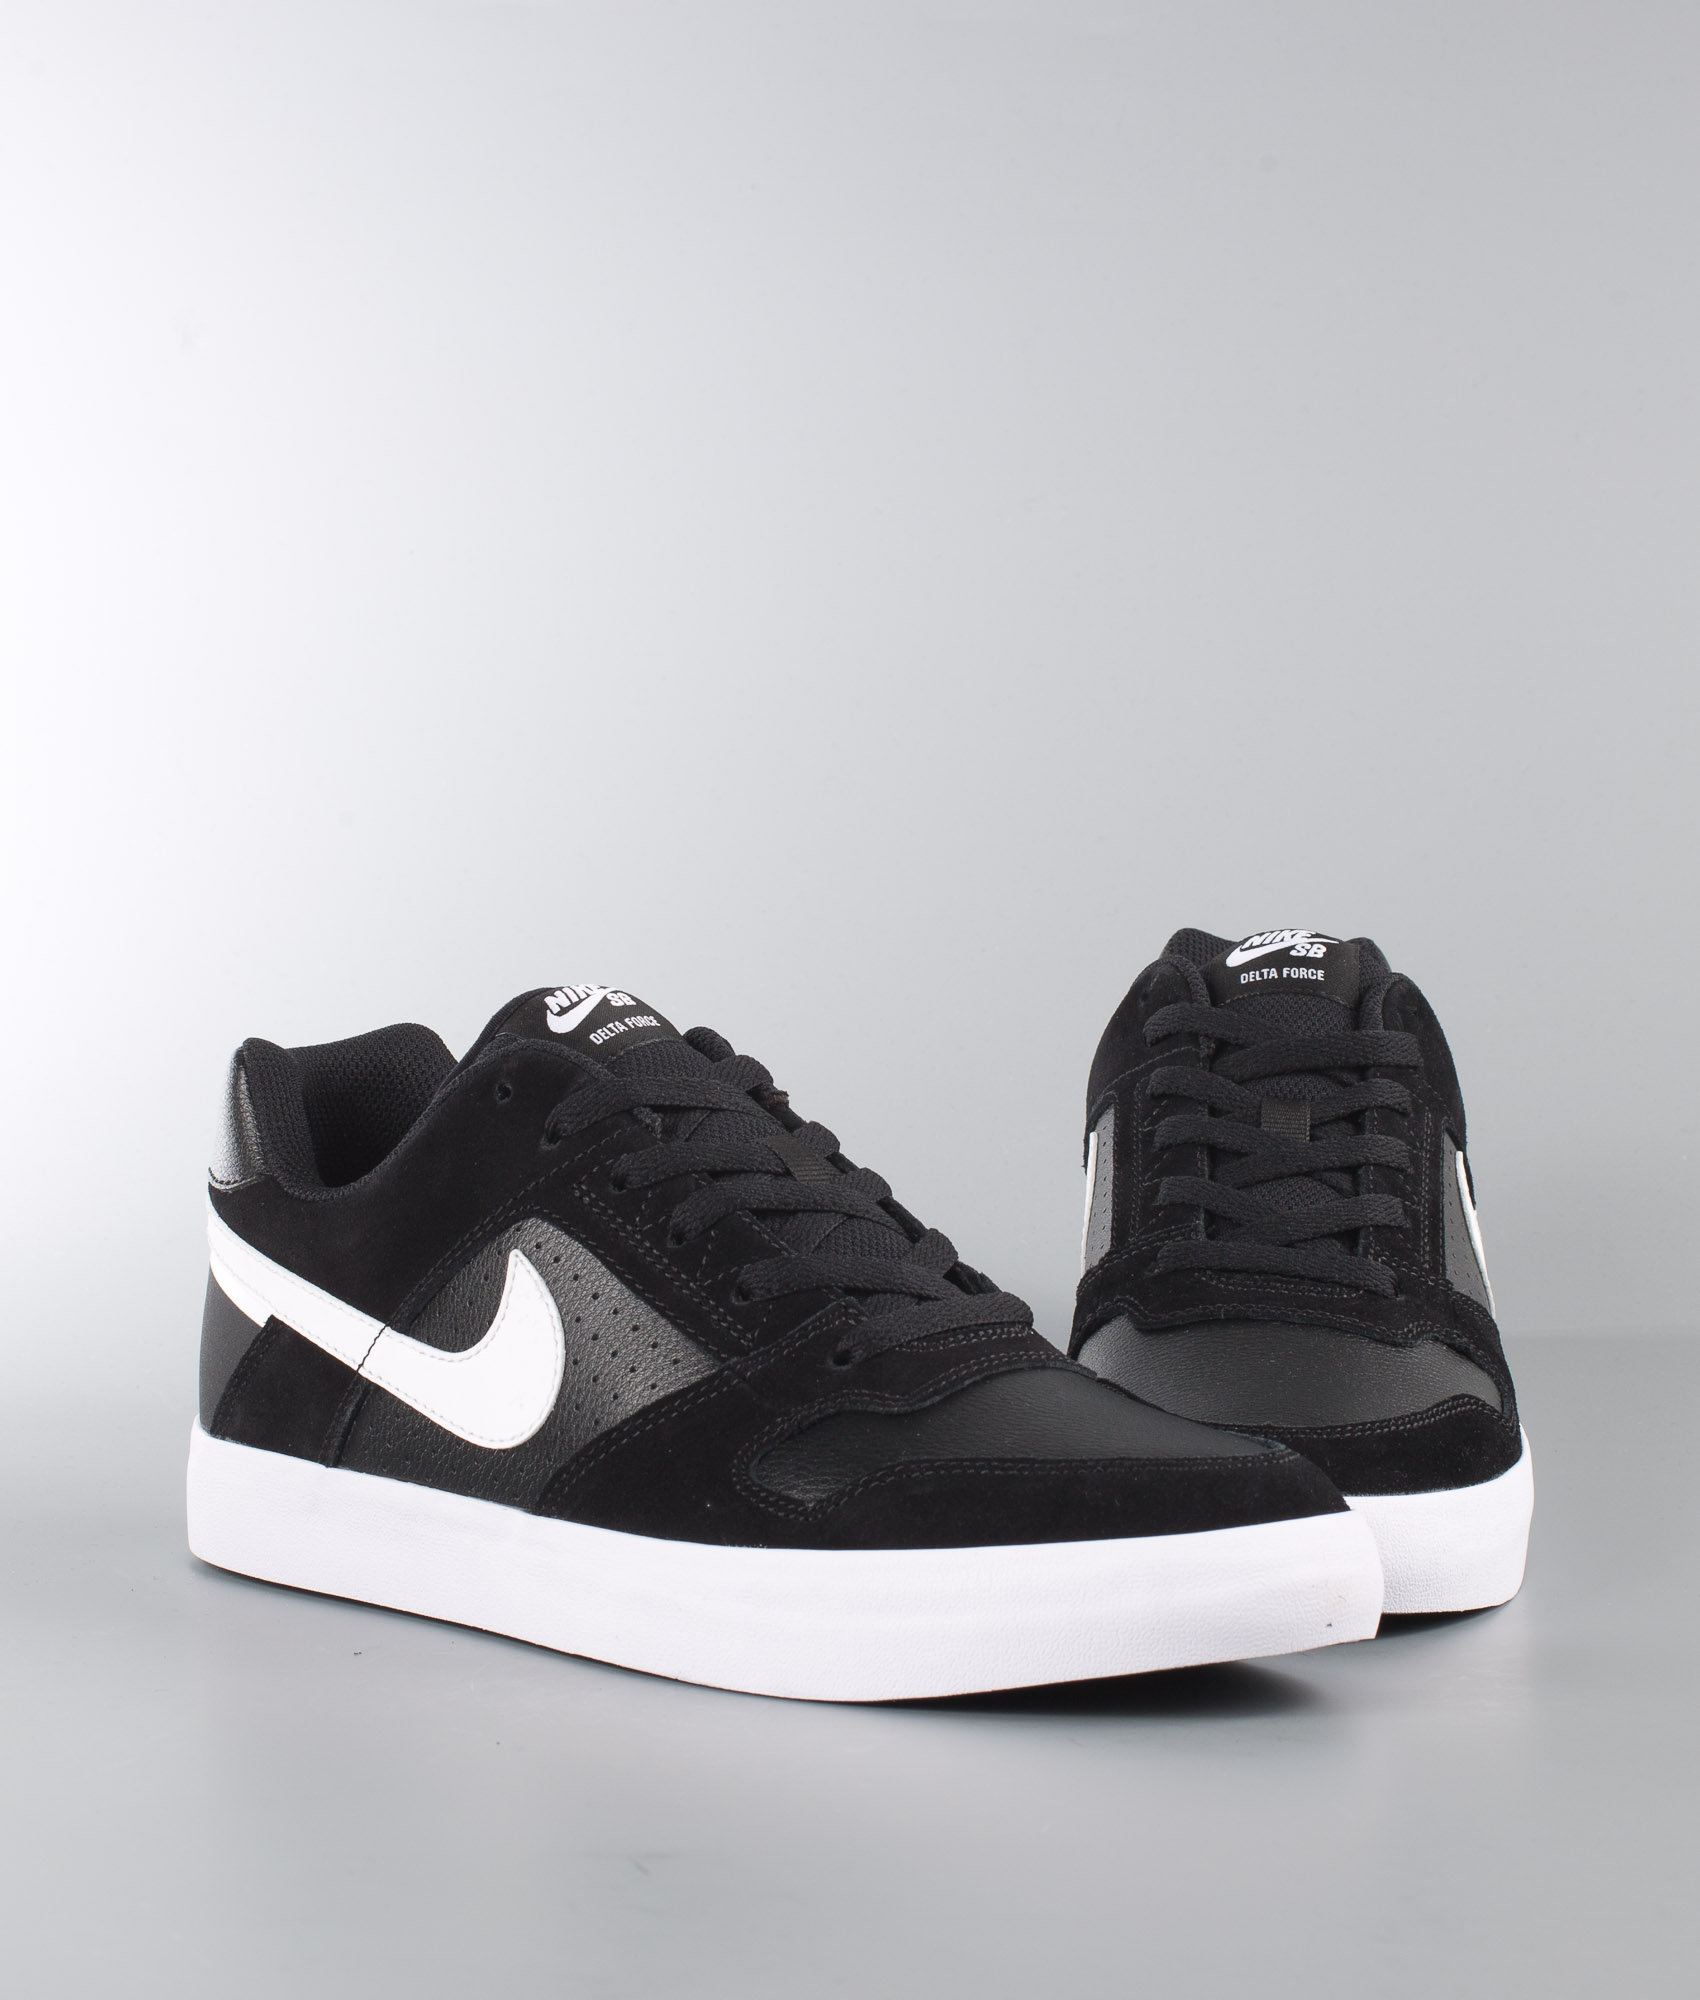 Nike Delta Force Vulc Schuhe Black/White-Anthracite-White - Ridestore.ch